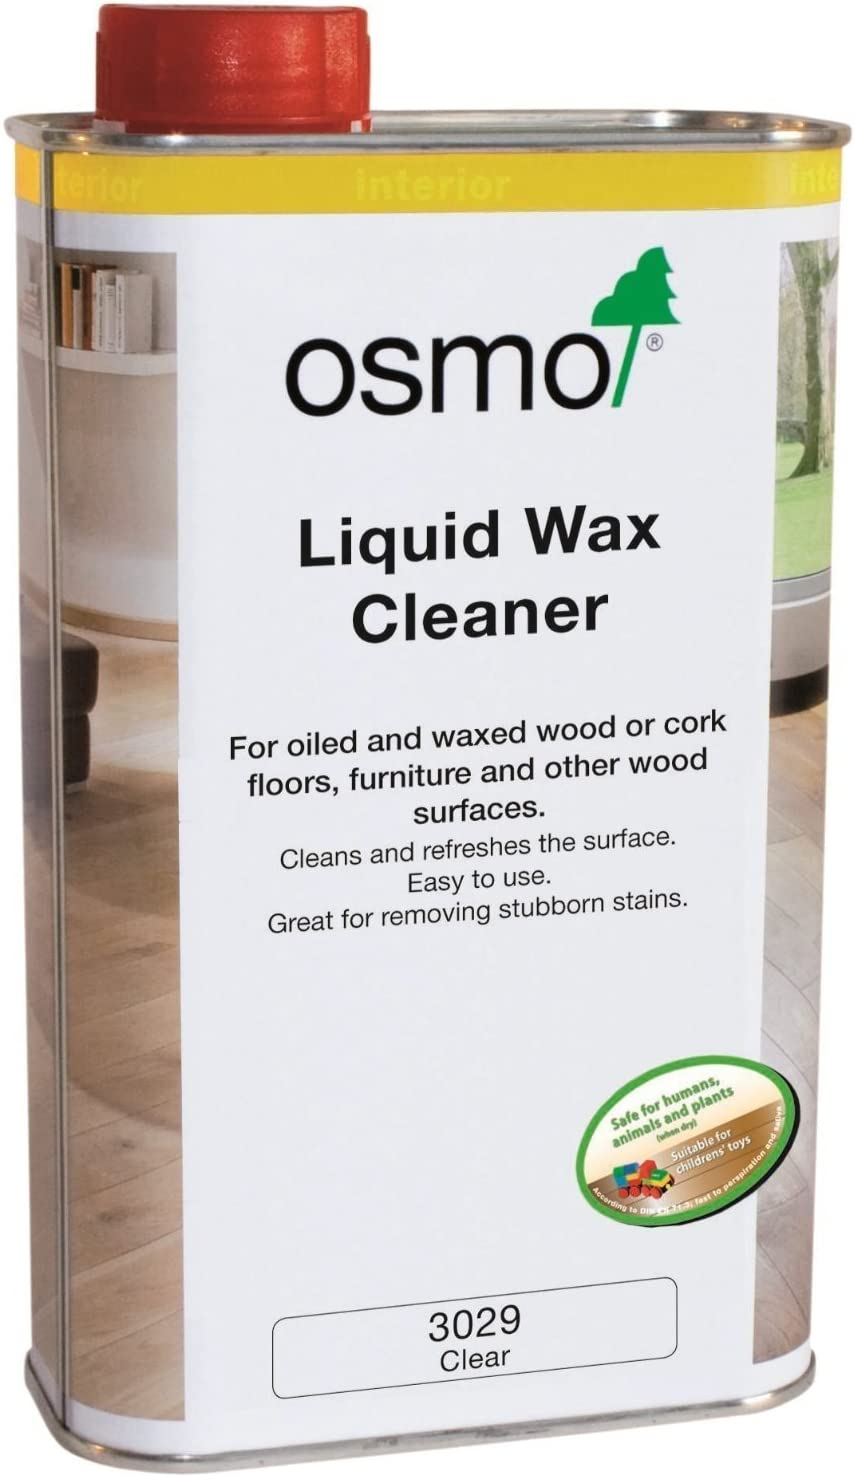 OSMO Liquid Wax Cleaner - 1 Liter